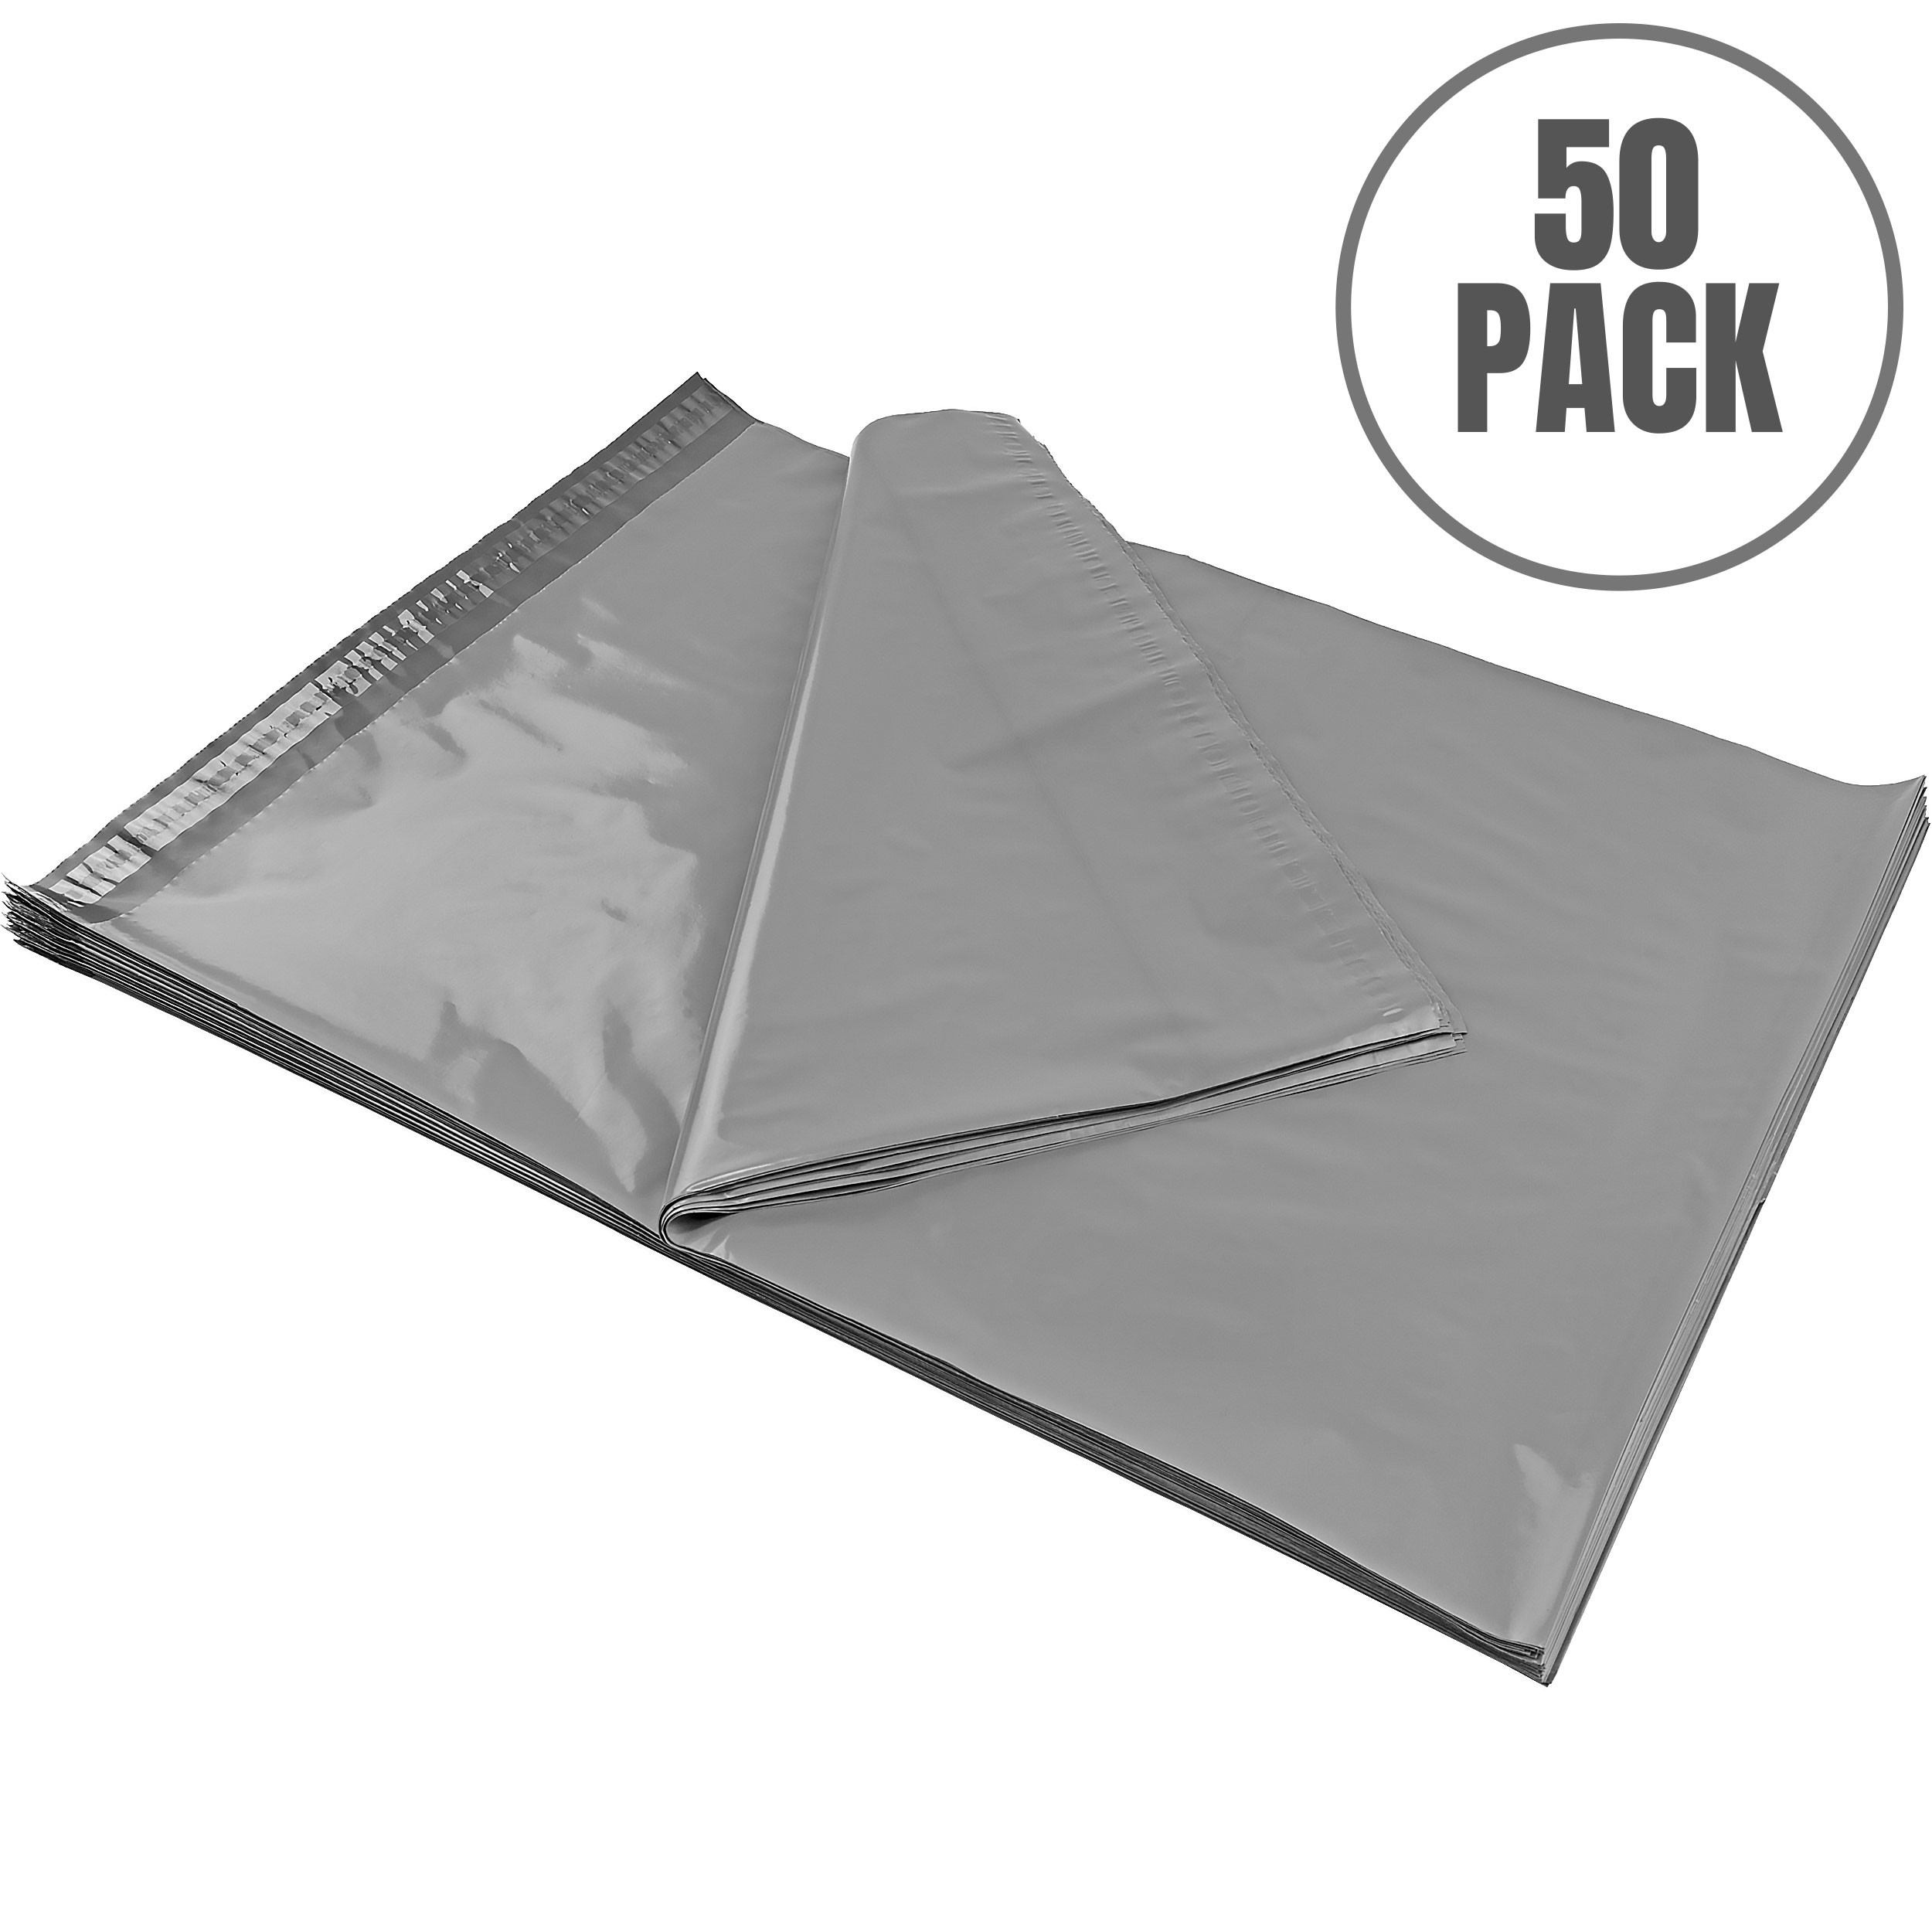 MAILERS4U 19 x 24 Inches Poly Shipping Envelopes/Self Sealing Bags, 2.4 Mil, 50-Count (19x24-PM-G60-50PK)